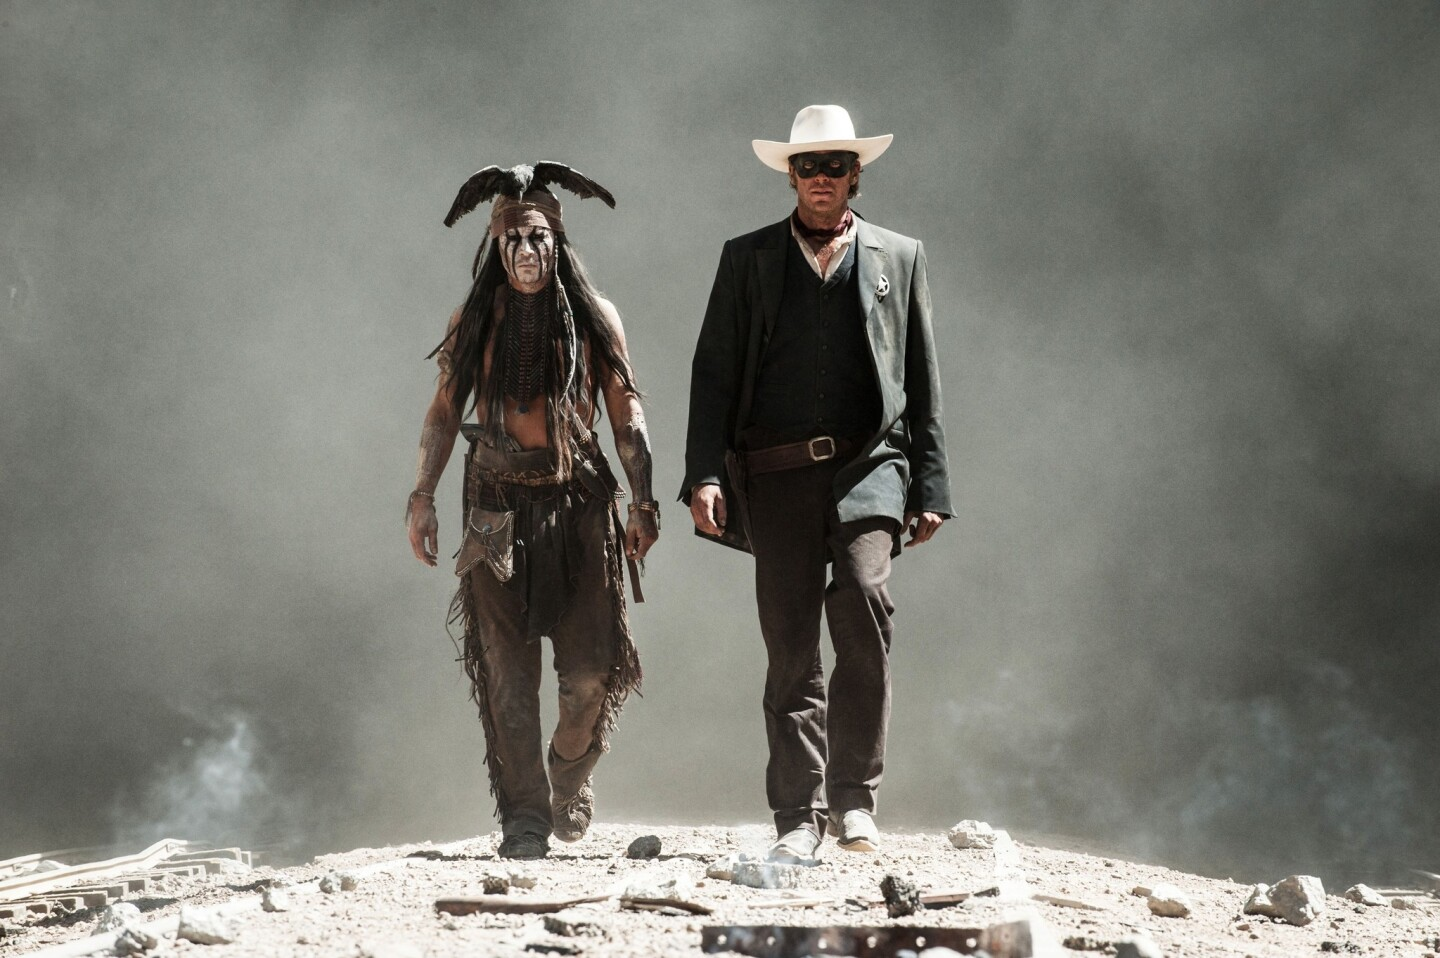 Disney's Western reboot had Jerry Bruckheimer producing and bankable star Johnny Depp starring (in much-mocked makeup and headgear), but the company ended up taking a loss of at least $160 million. Production budget: $225 million Worldwide gross: $261 million